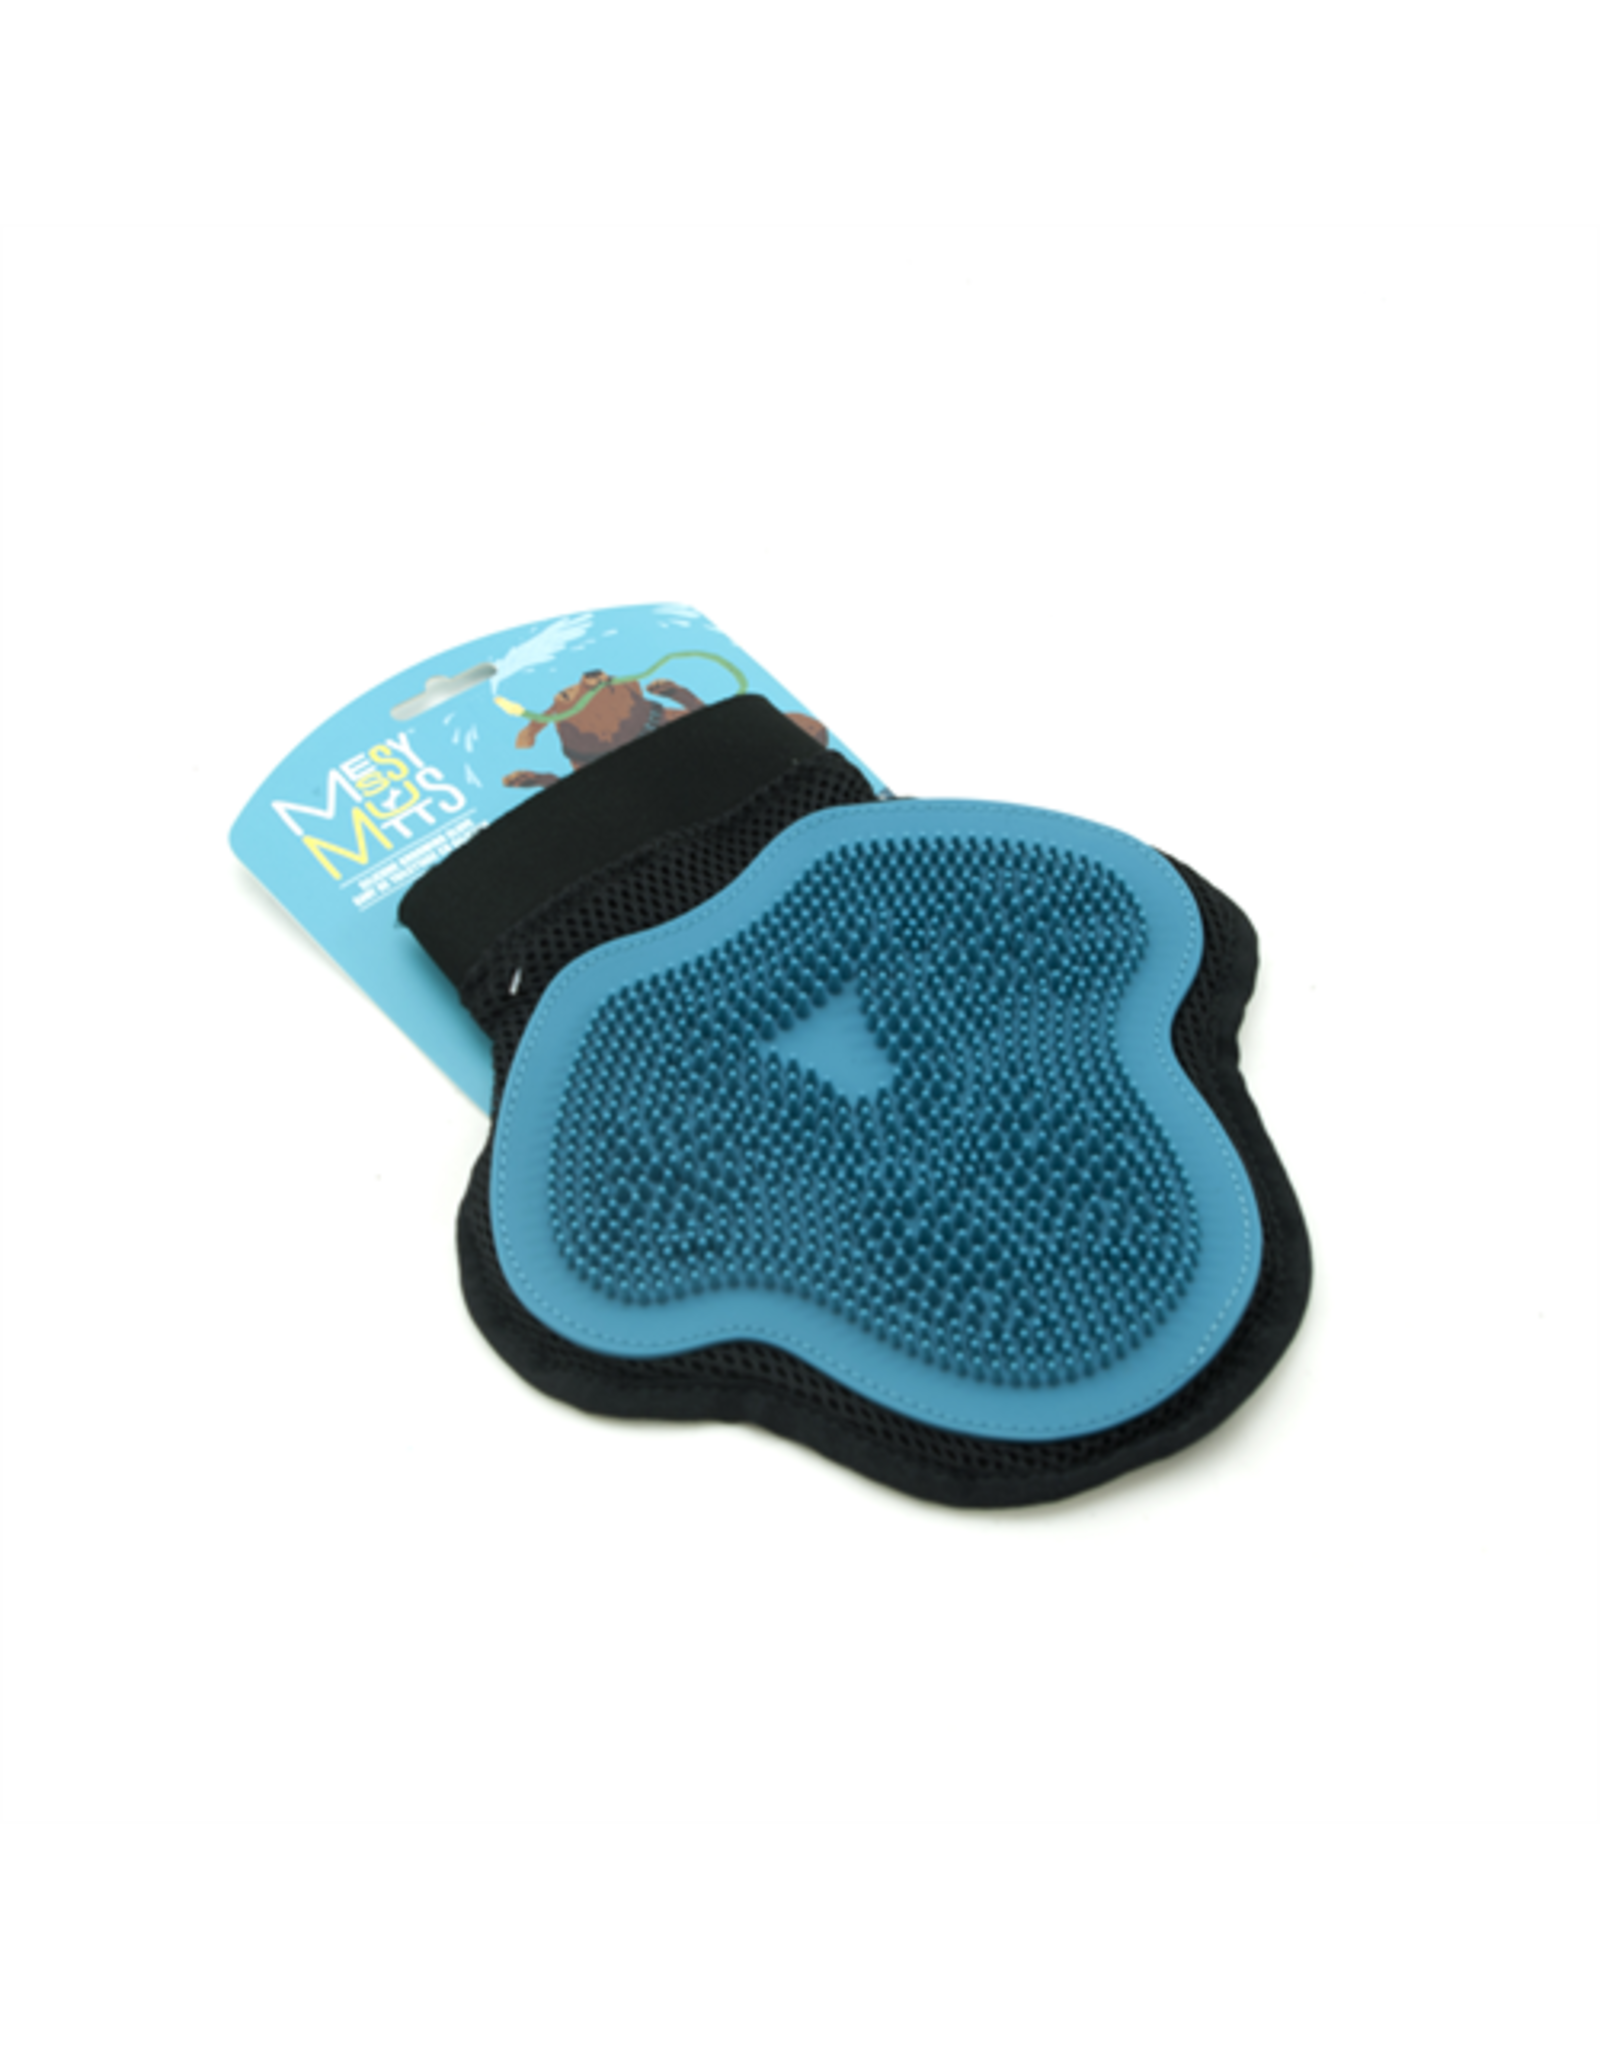 Messy Mutts Messy Mutts Silicone Grooming Glove Blue